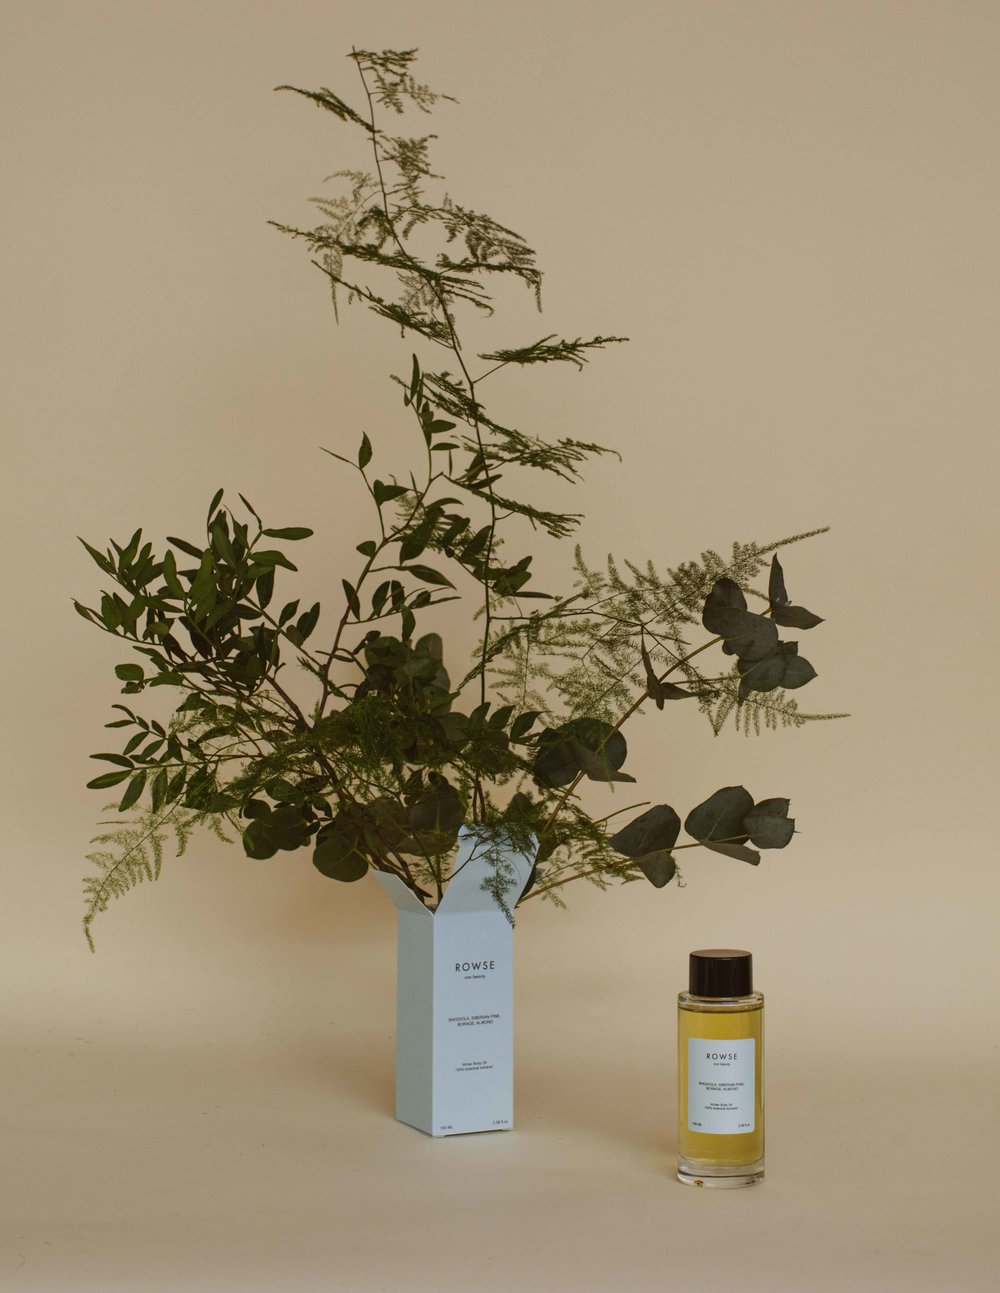 WINTER BODY OIL - ROWSE has taken nature's most powerful ingredients and botanical scents to create the Winter Body Oil.ROWSE's first body oil is a blend of super powerful raw plants including Rhodiola, Siberian Pine, Borage and Almond. All of these plants contain strong antioxidants to nourish and protect the skin during the coldest season of the year.100% natural* | preservative free | cruelty free | vegan